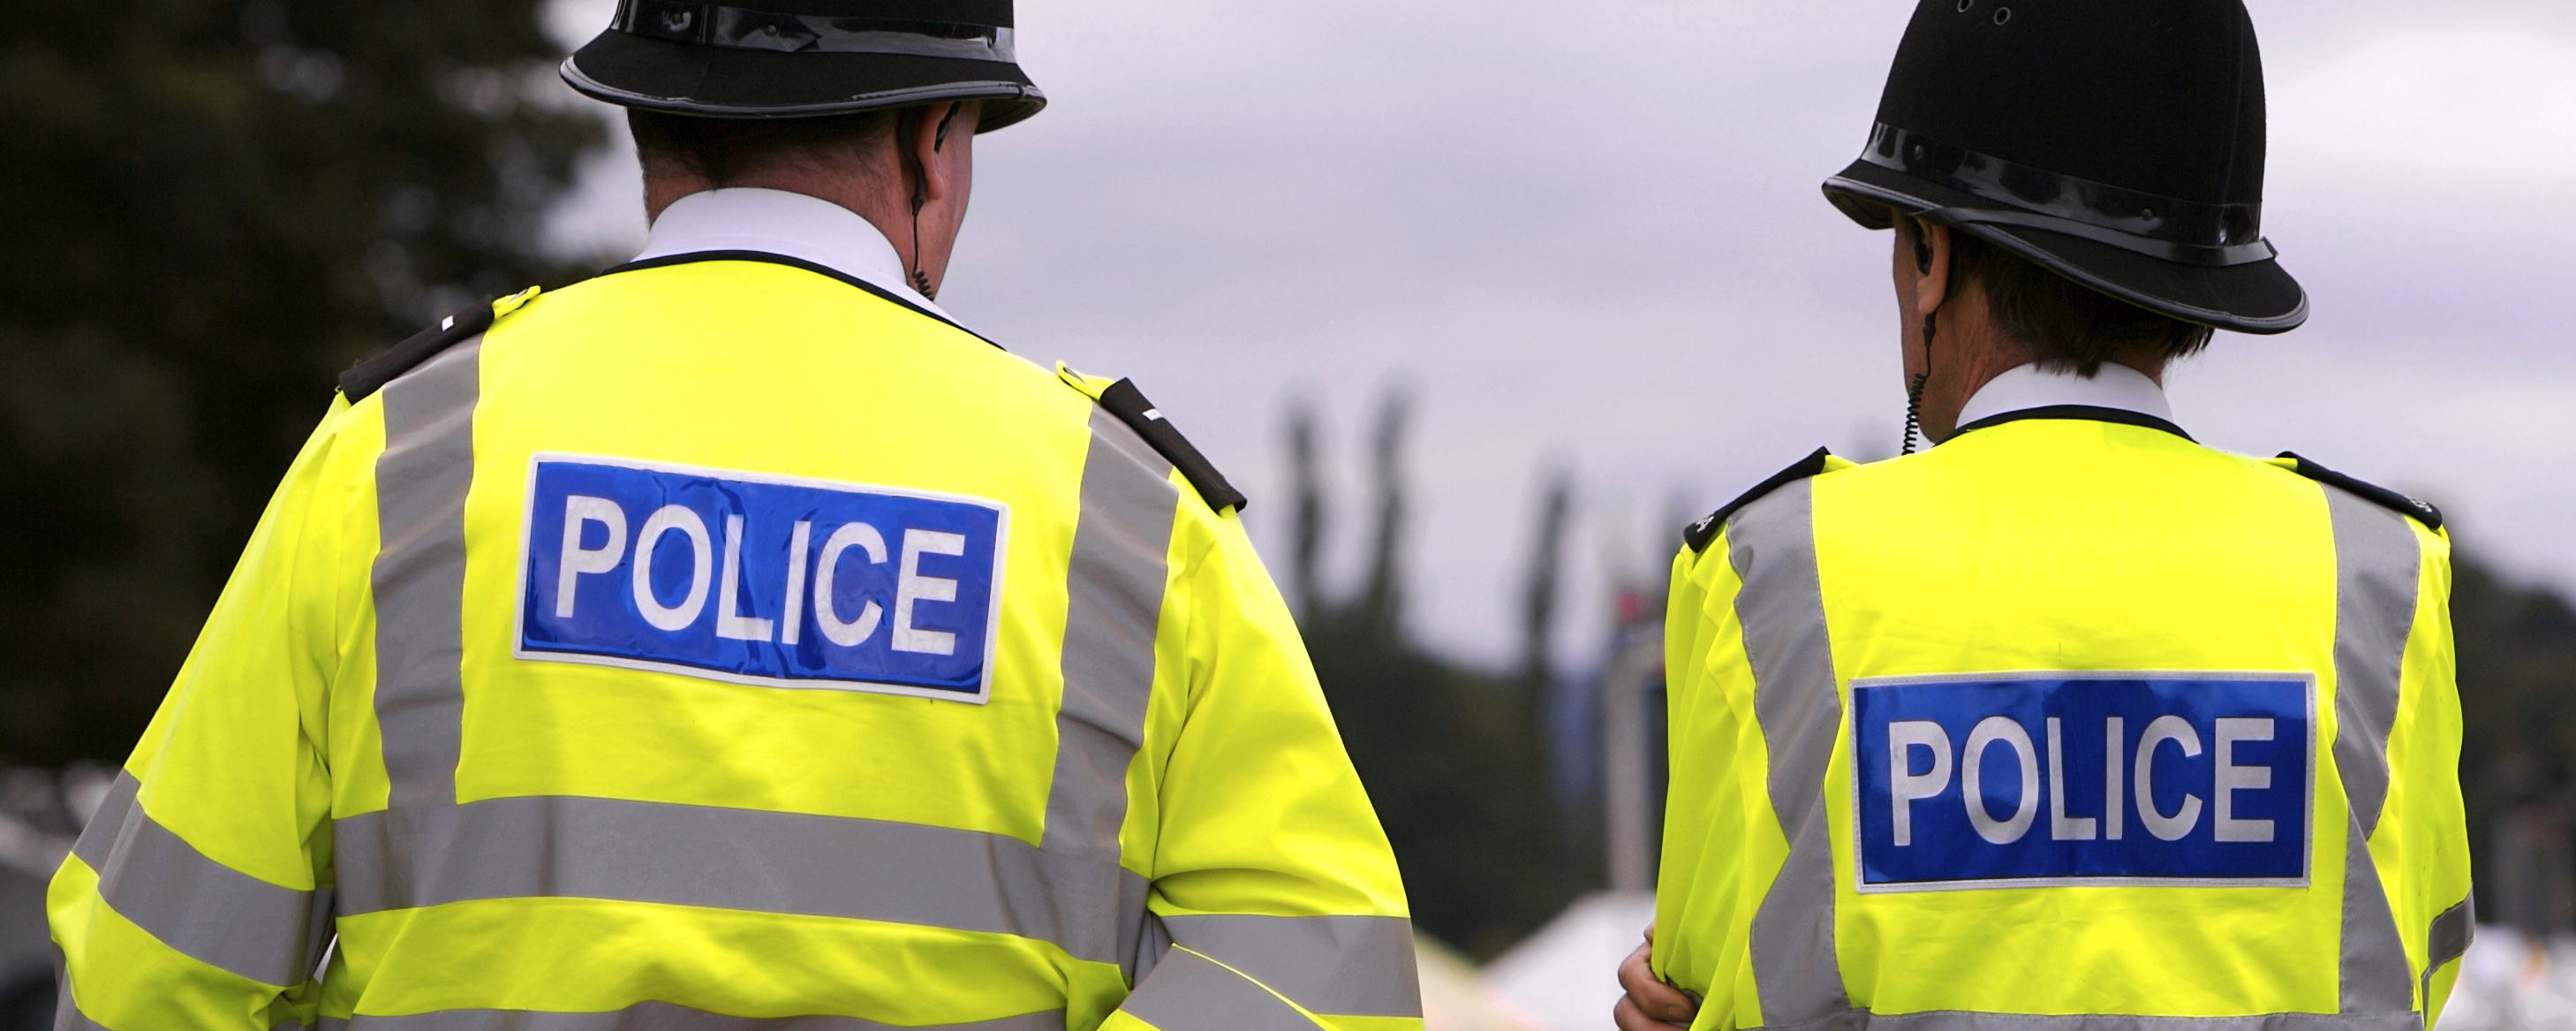 Top police officers' receive 21% basic pay increase in allowances and perks